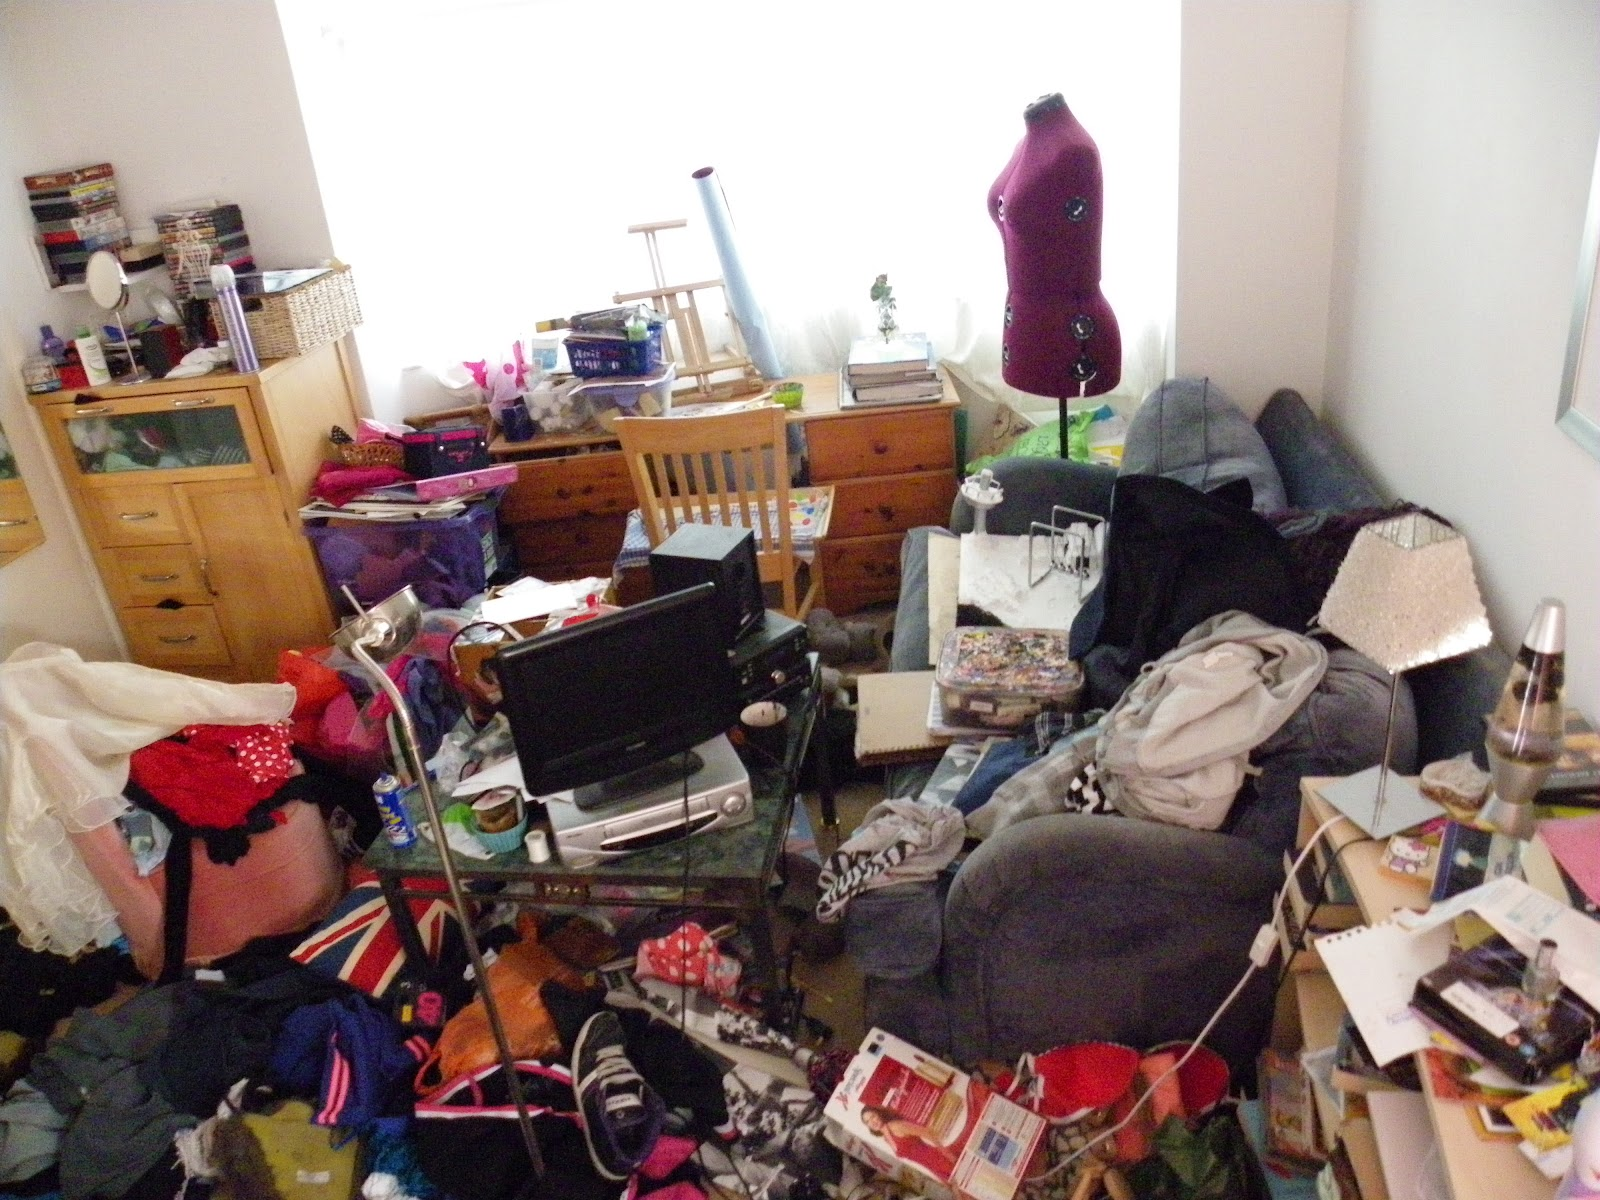 Sammies Mutteringsysis Of A Messy Bedroom Part 1